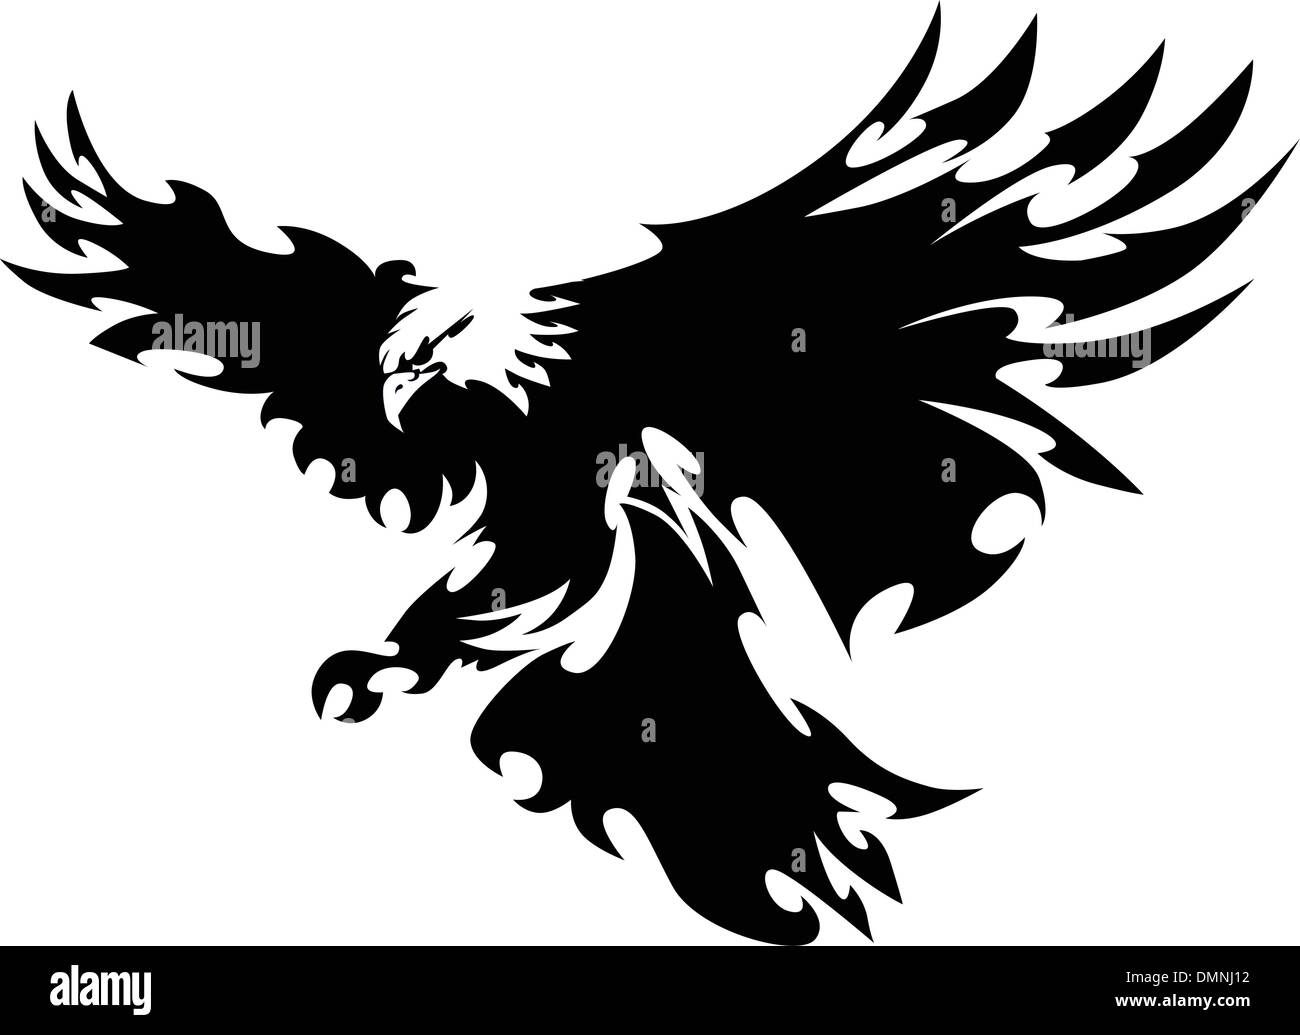 Eagle Mascot Flying Wings Design - Stock Image